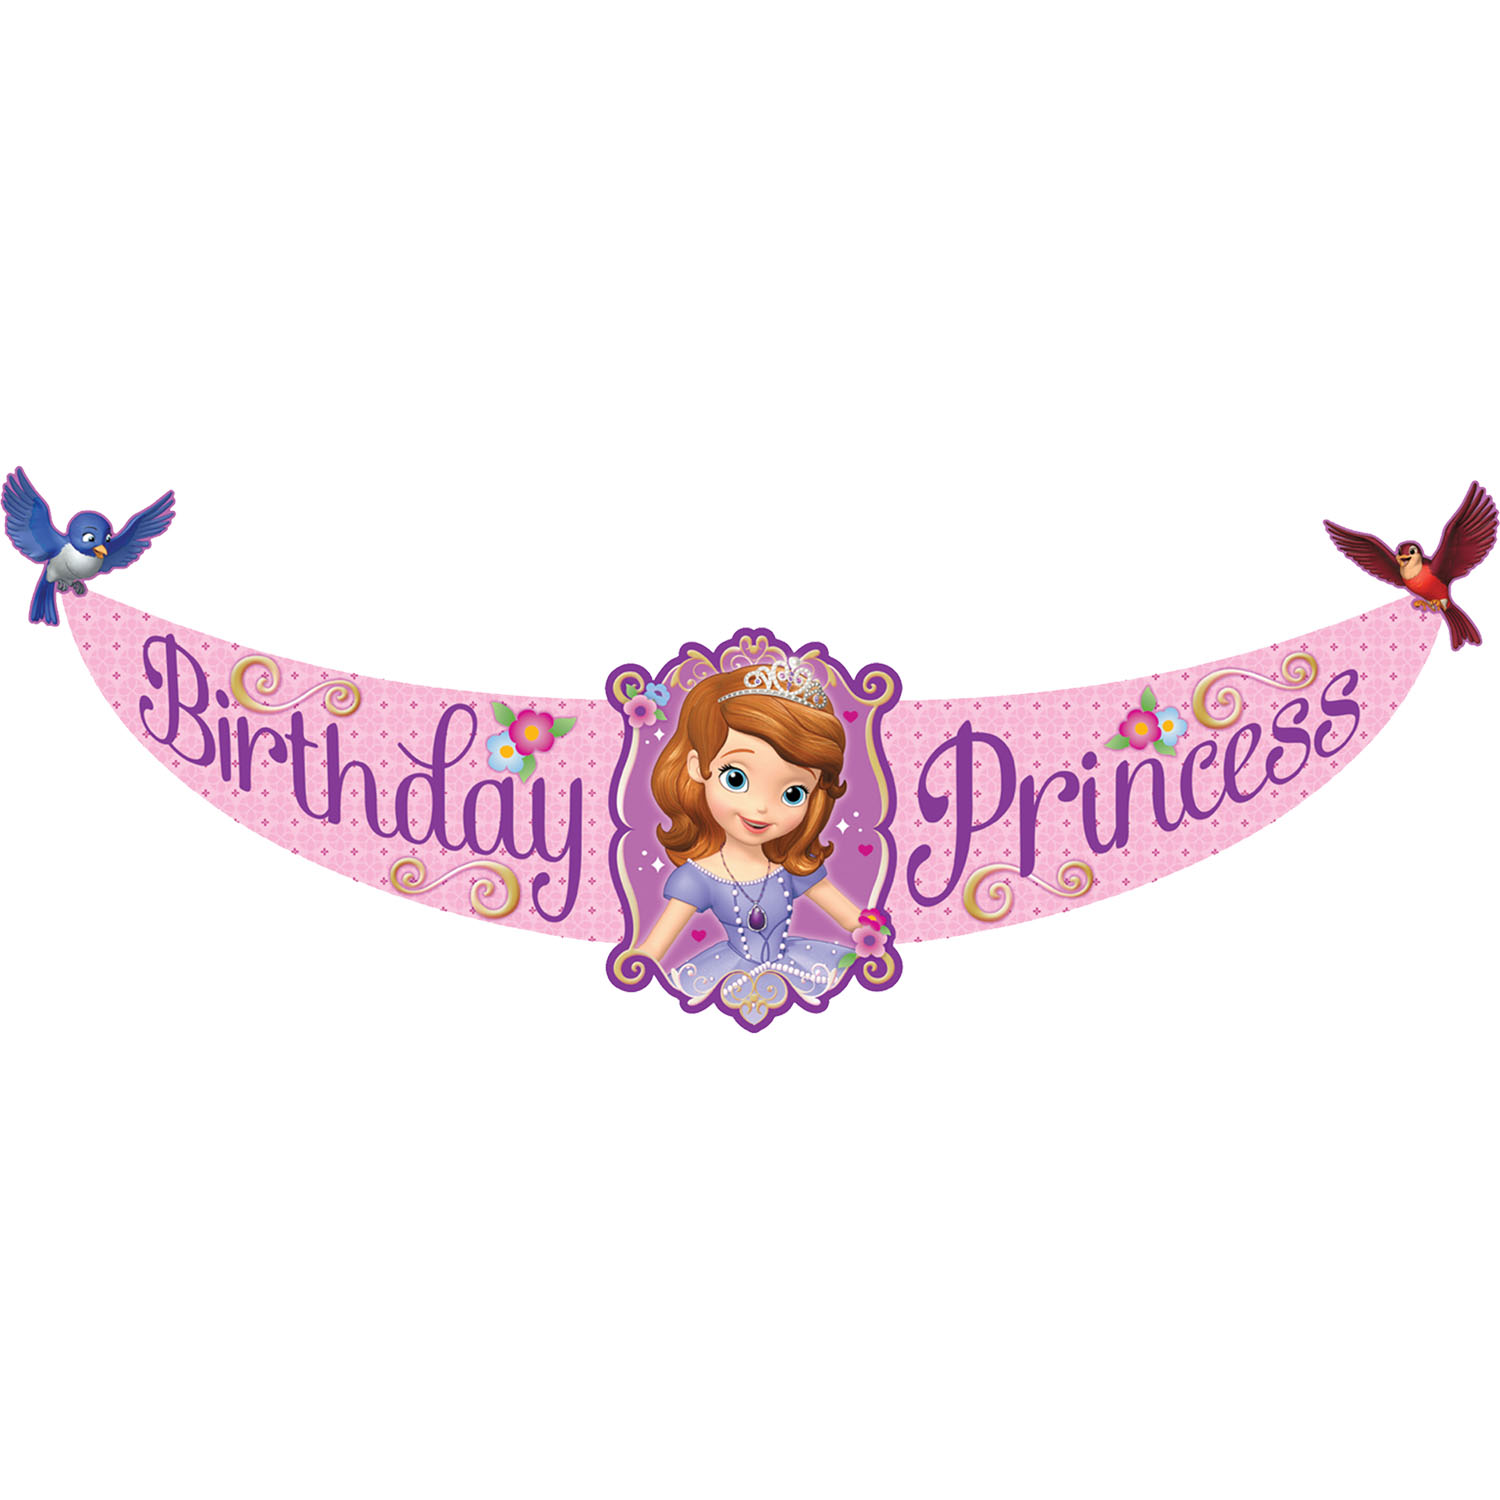 Sofia The First Party Supplies Birthday Banner At ToyStop